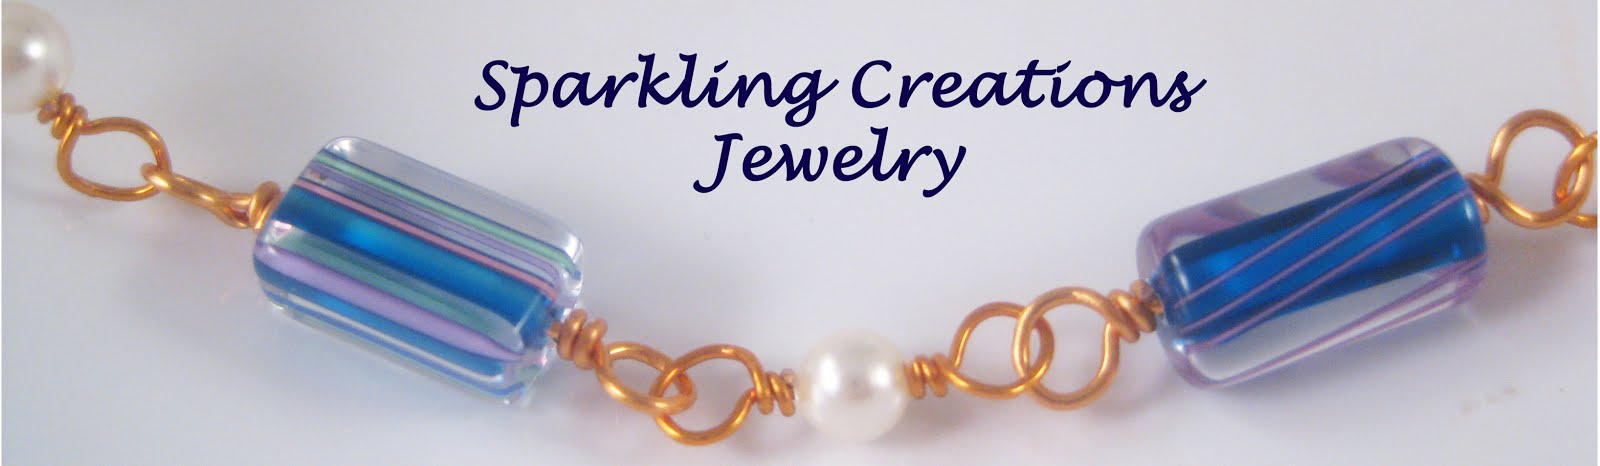 Sparkling Creations Jewelry